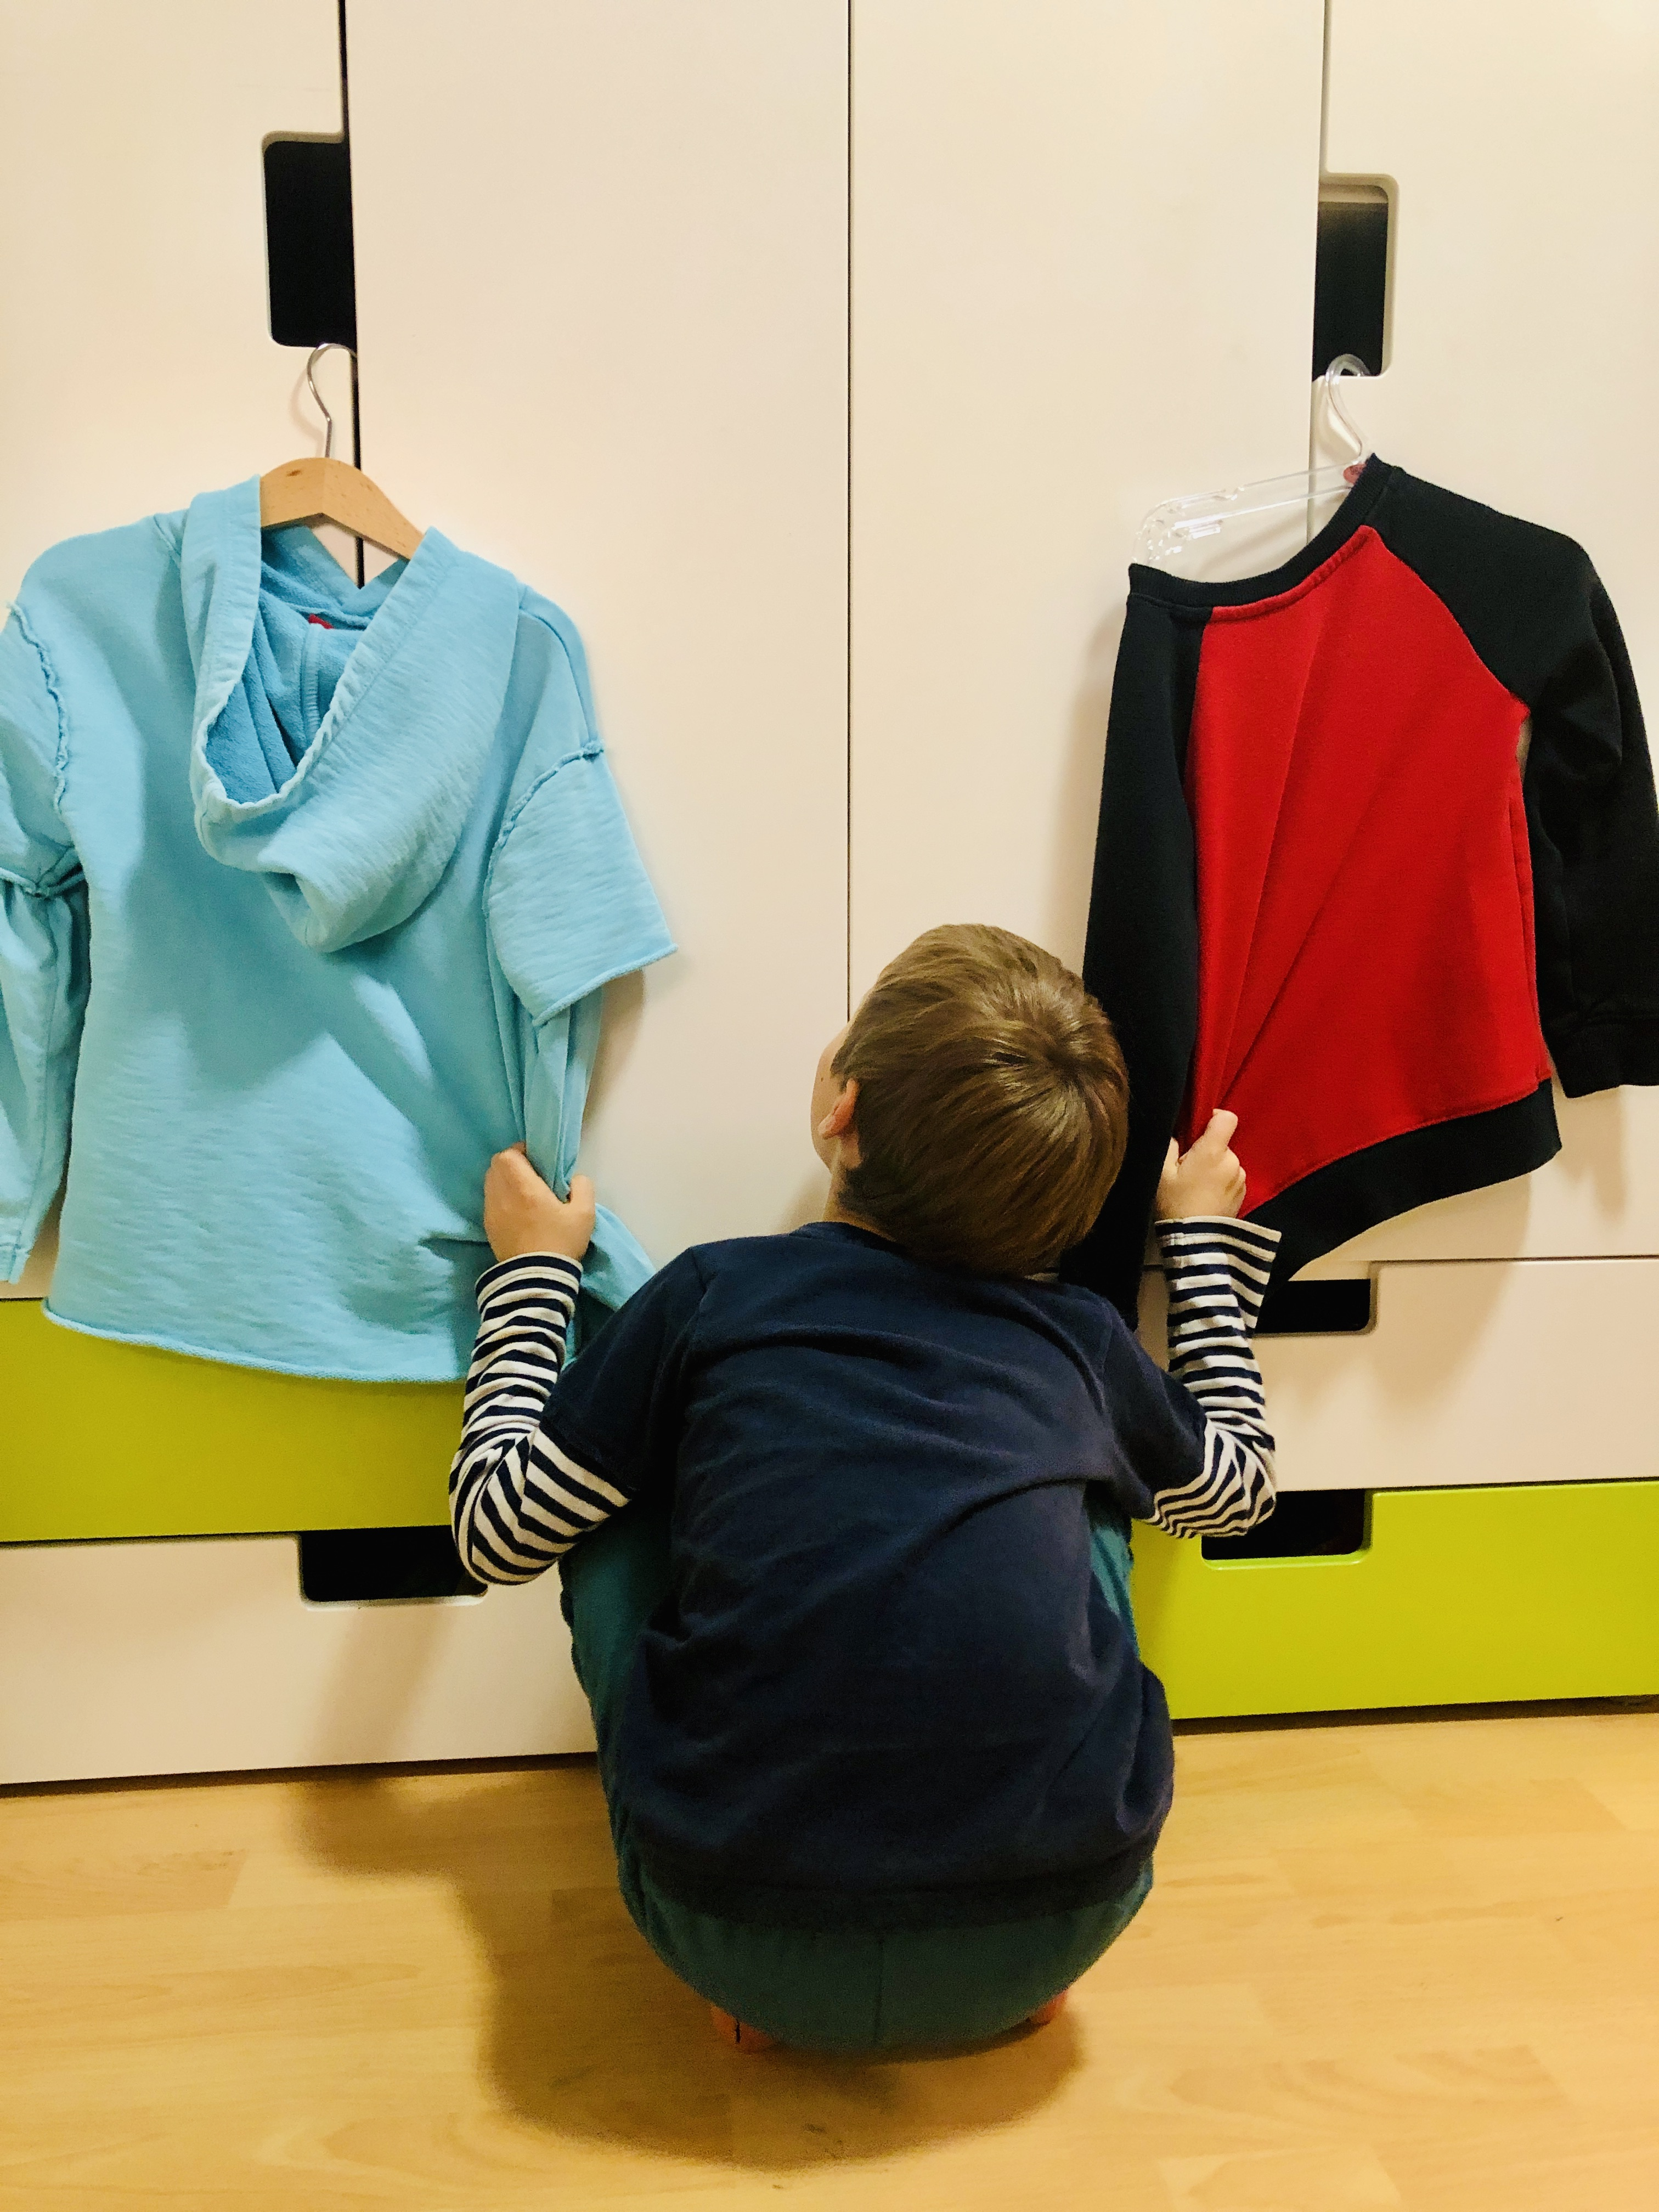 kid deciding which t-shirt to wear